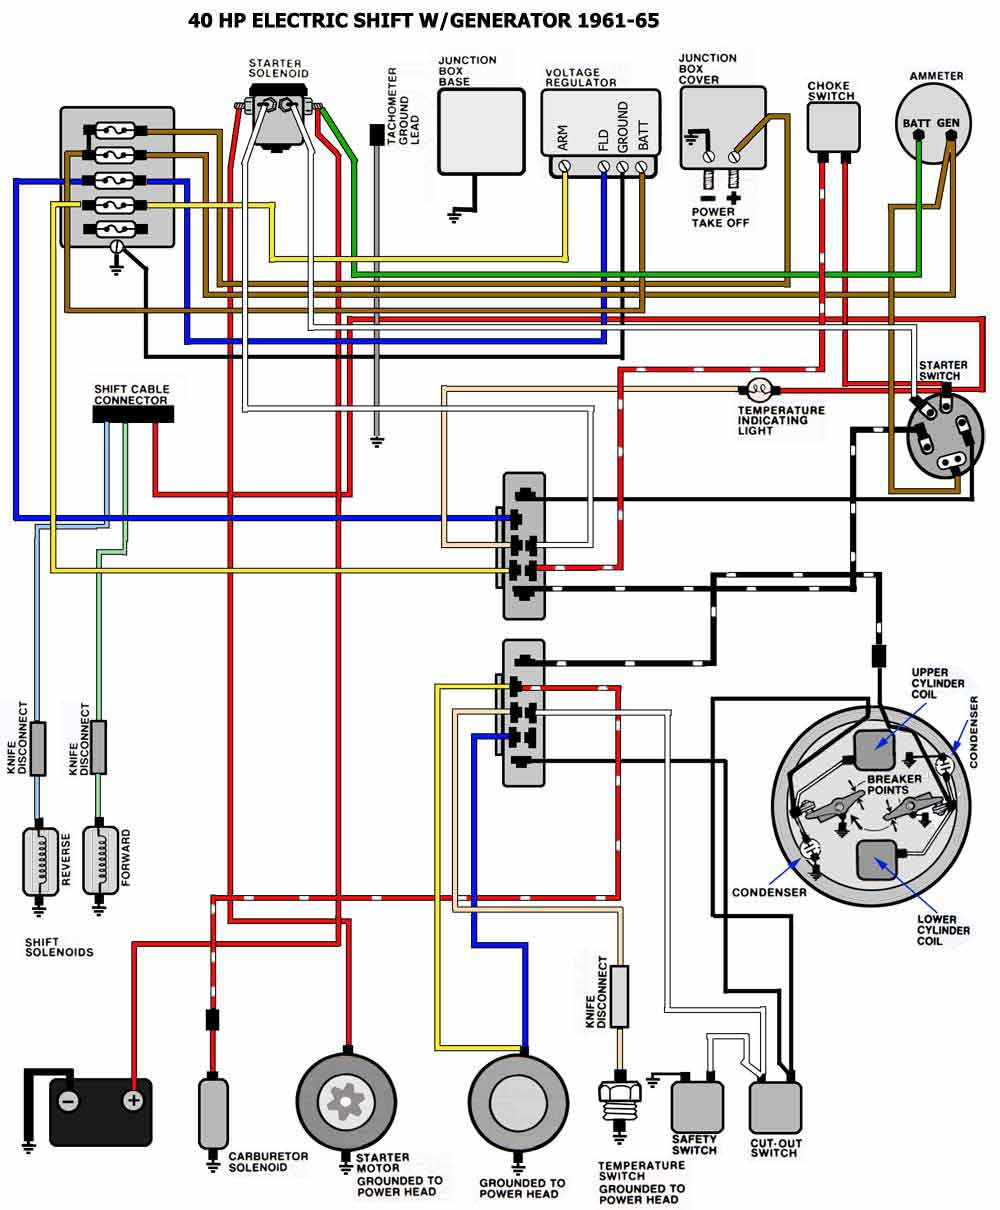 tilt and trim switch wiring diagram Download-Tilt and Trim Switch Wiring Diagram Awesome Technical Information 10-l